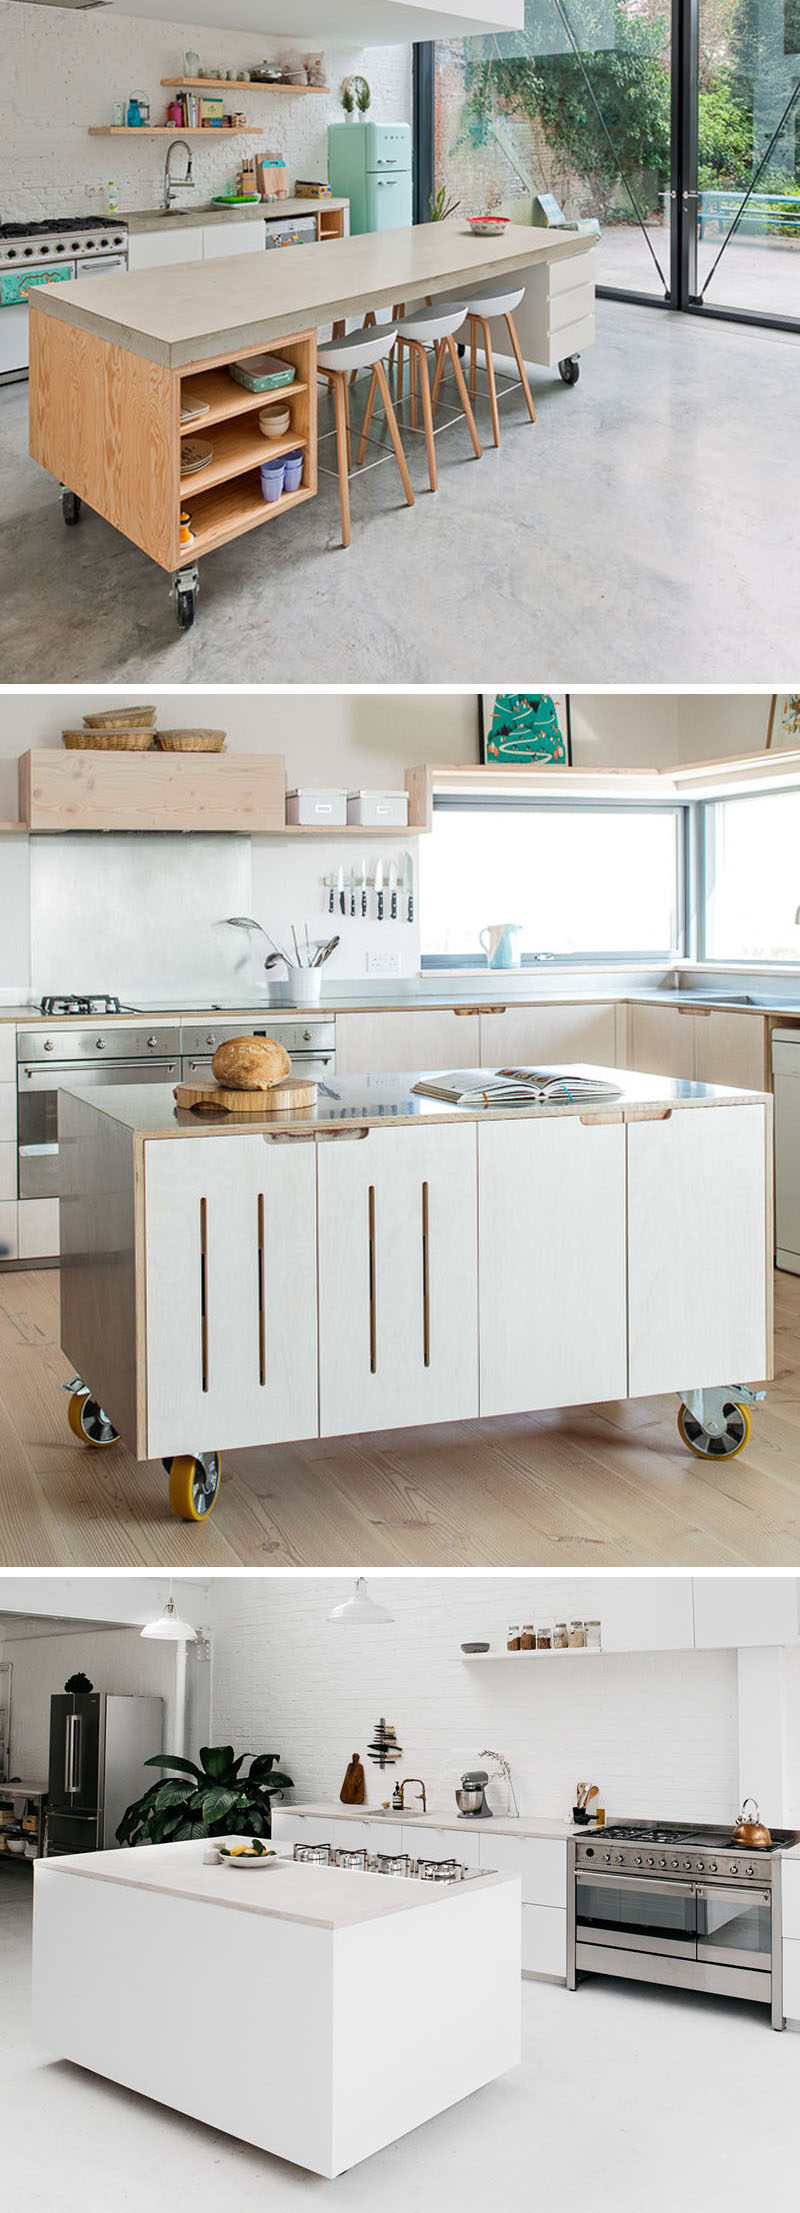 8 Examples Of Kitchens With Movable Islands That Make It ...